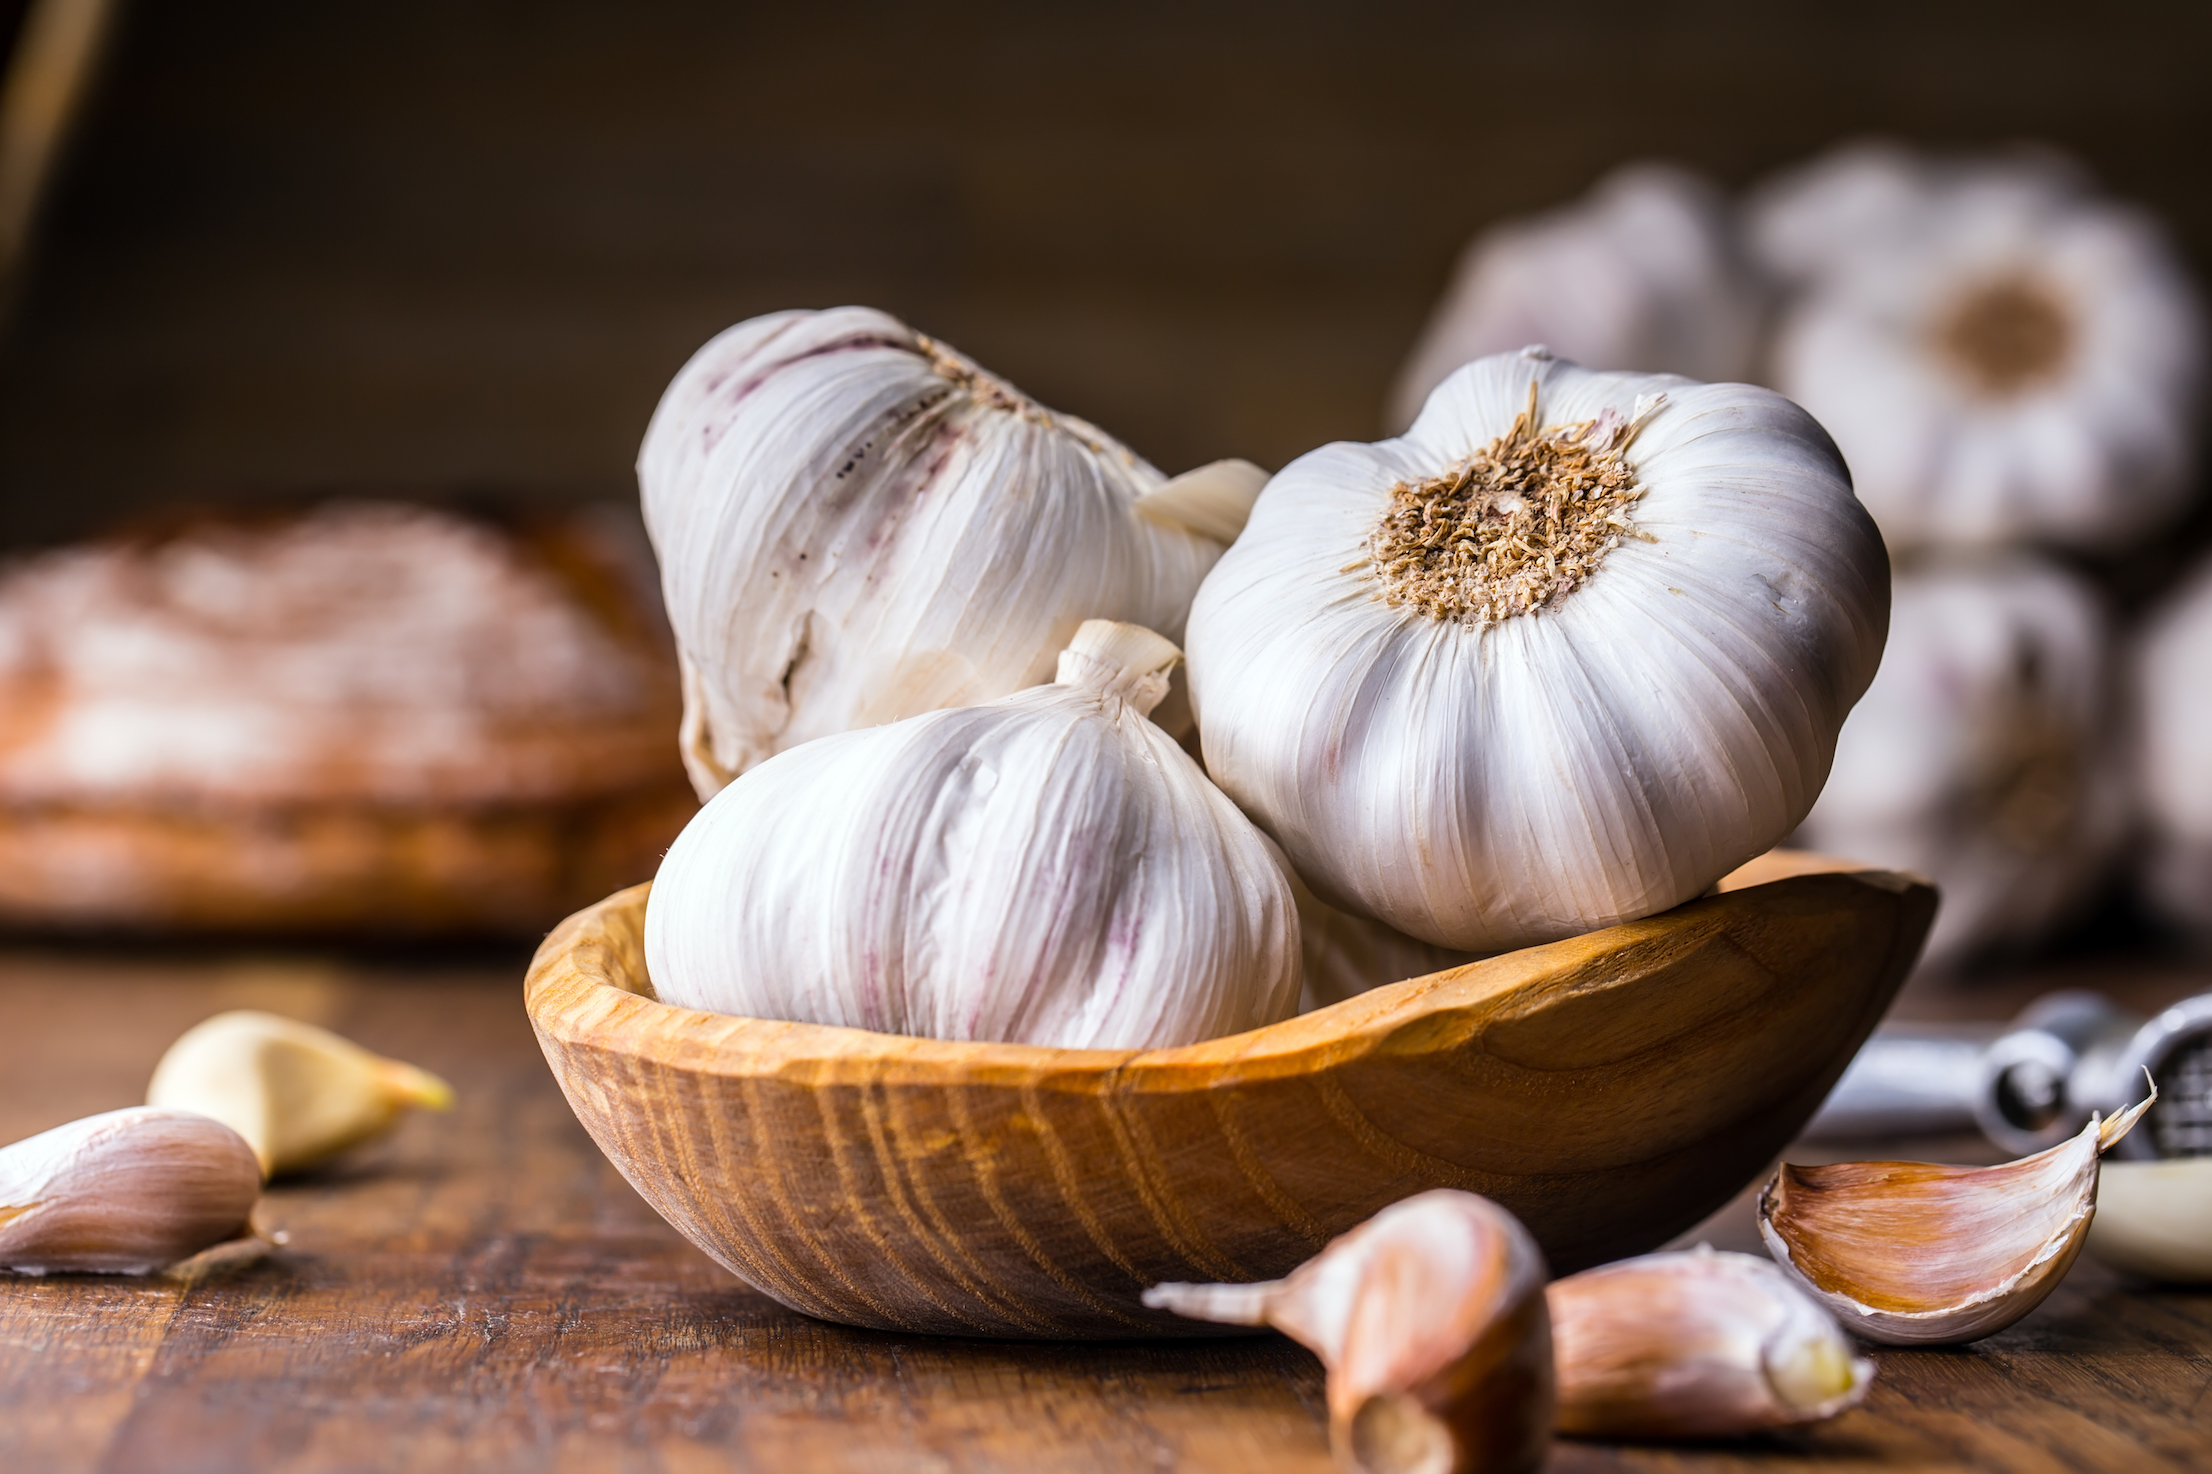 Due to the wide range of compounds garlic produces, achieving consistent results from clinical trials can be rather complicated.